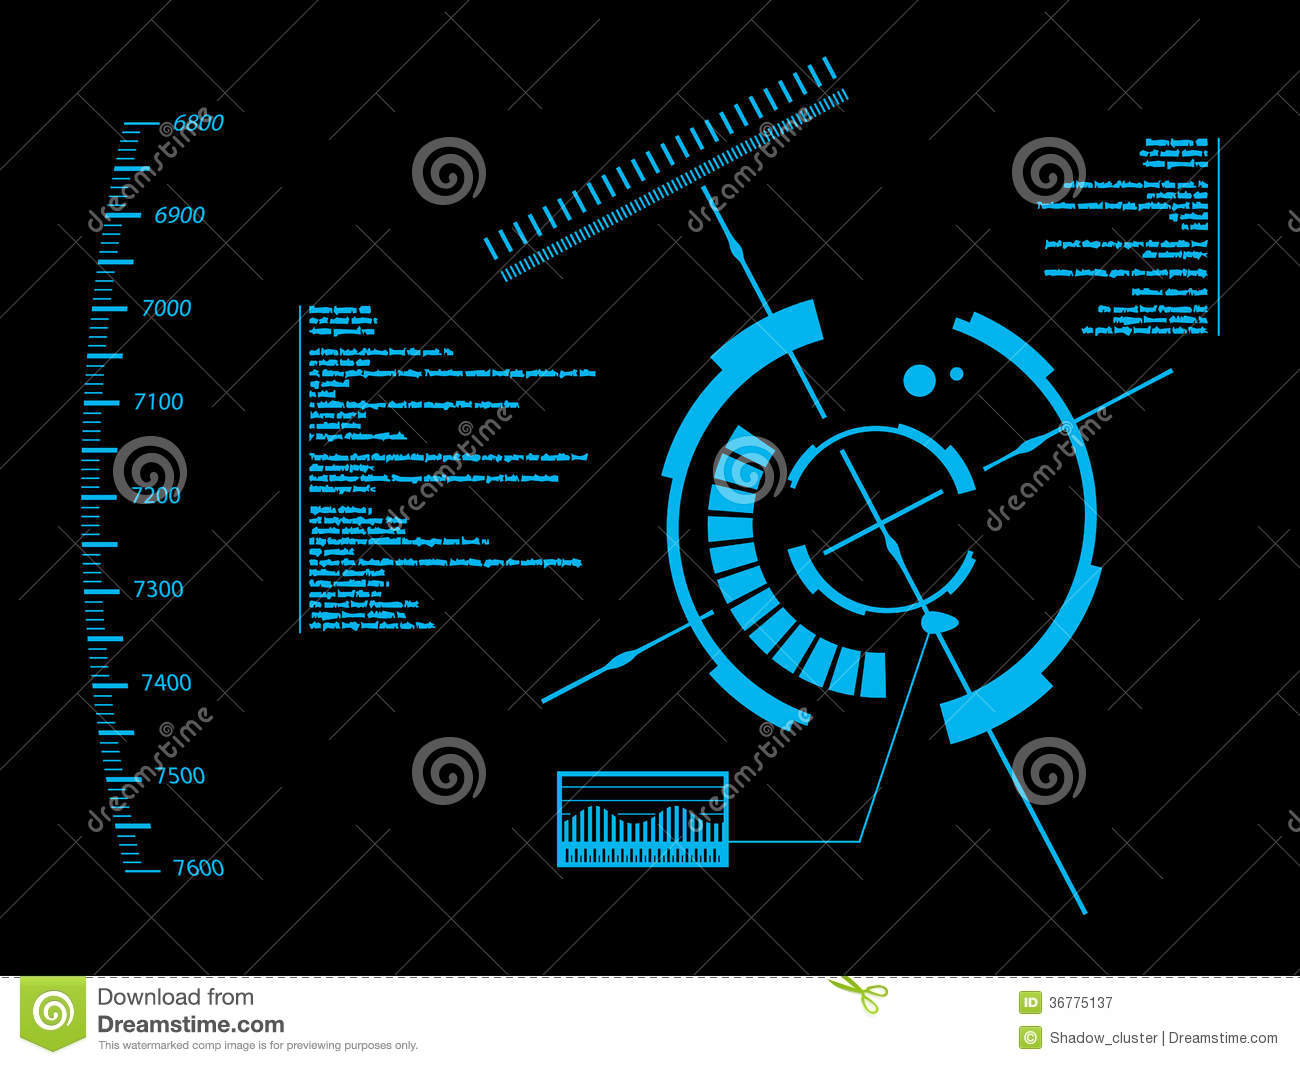 ... User Interface HUD Royalty Free Stock Photography - Image: 36775137: https://www.dreamstime.com/royalty-free-stock-photography...